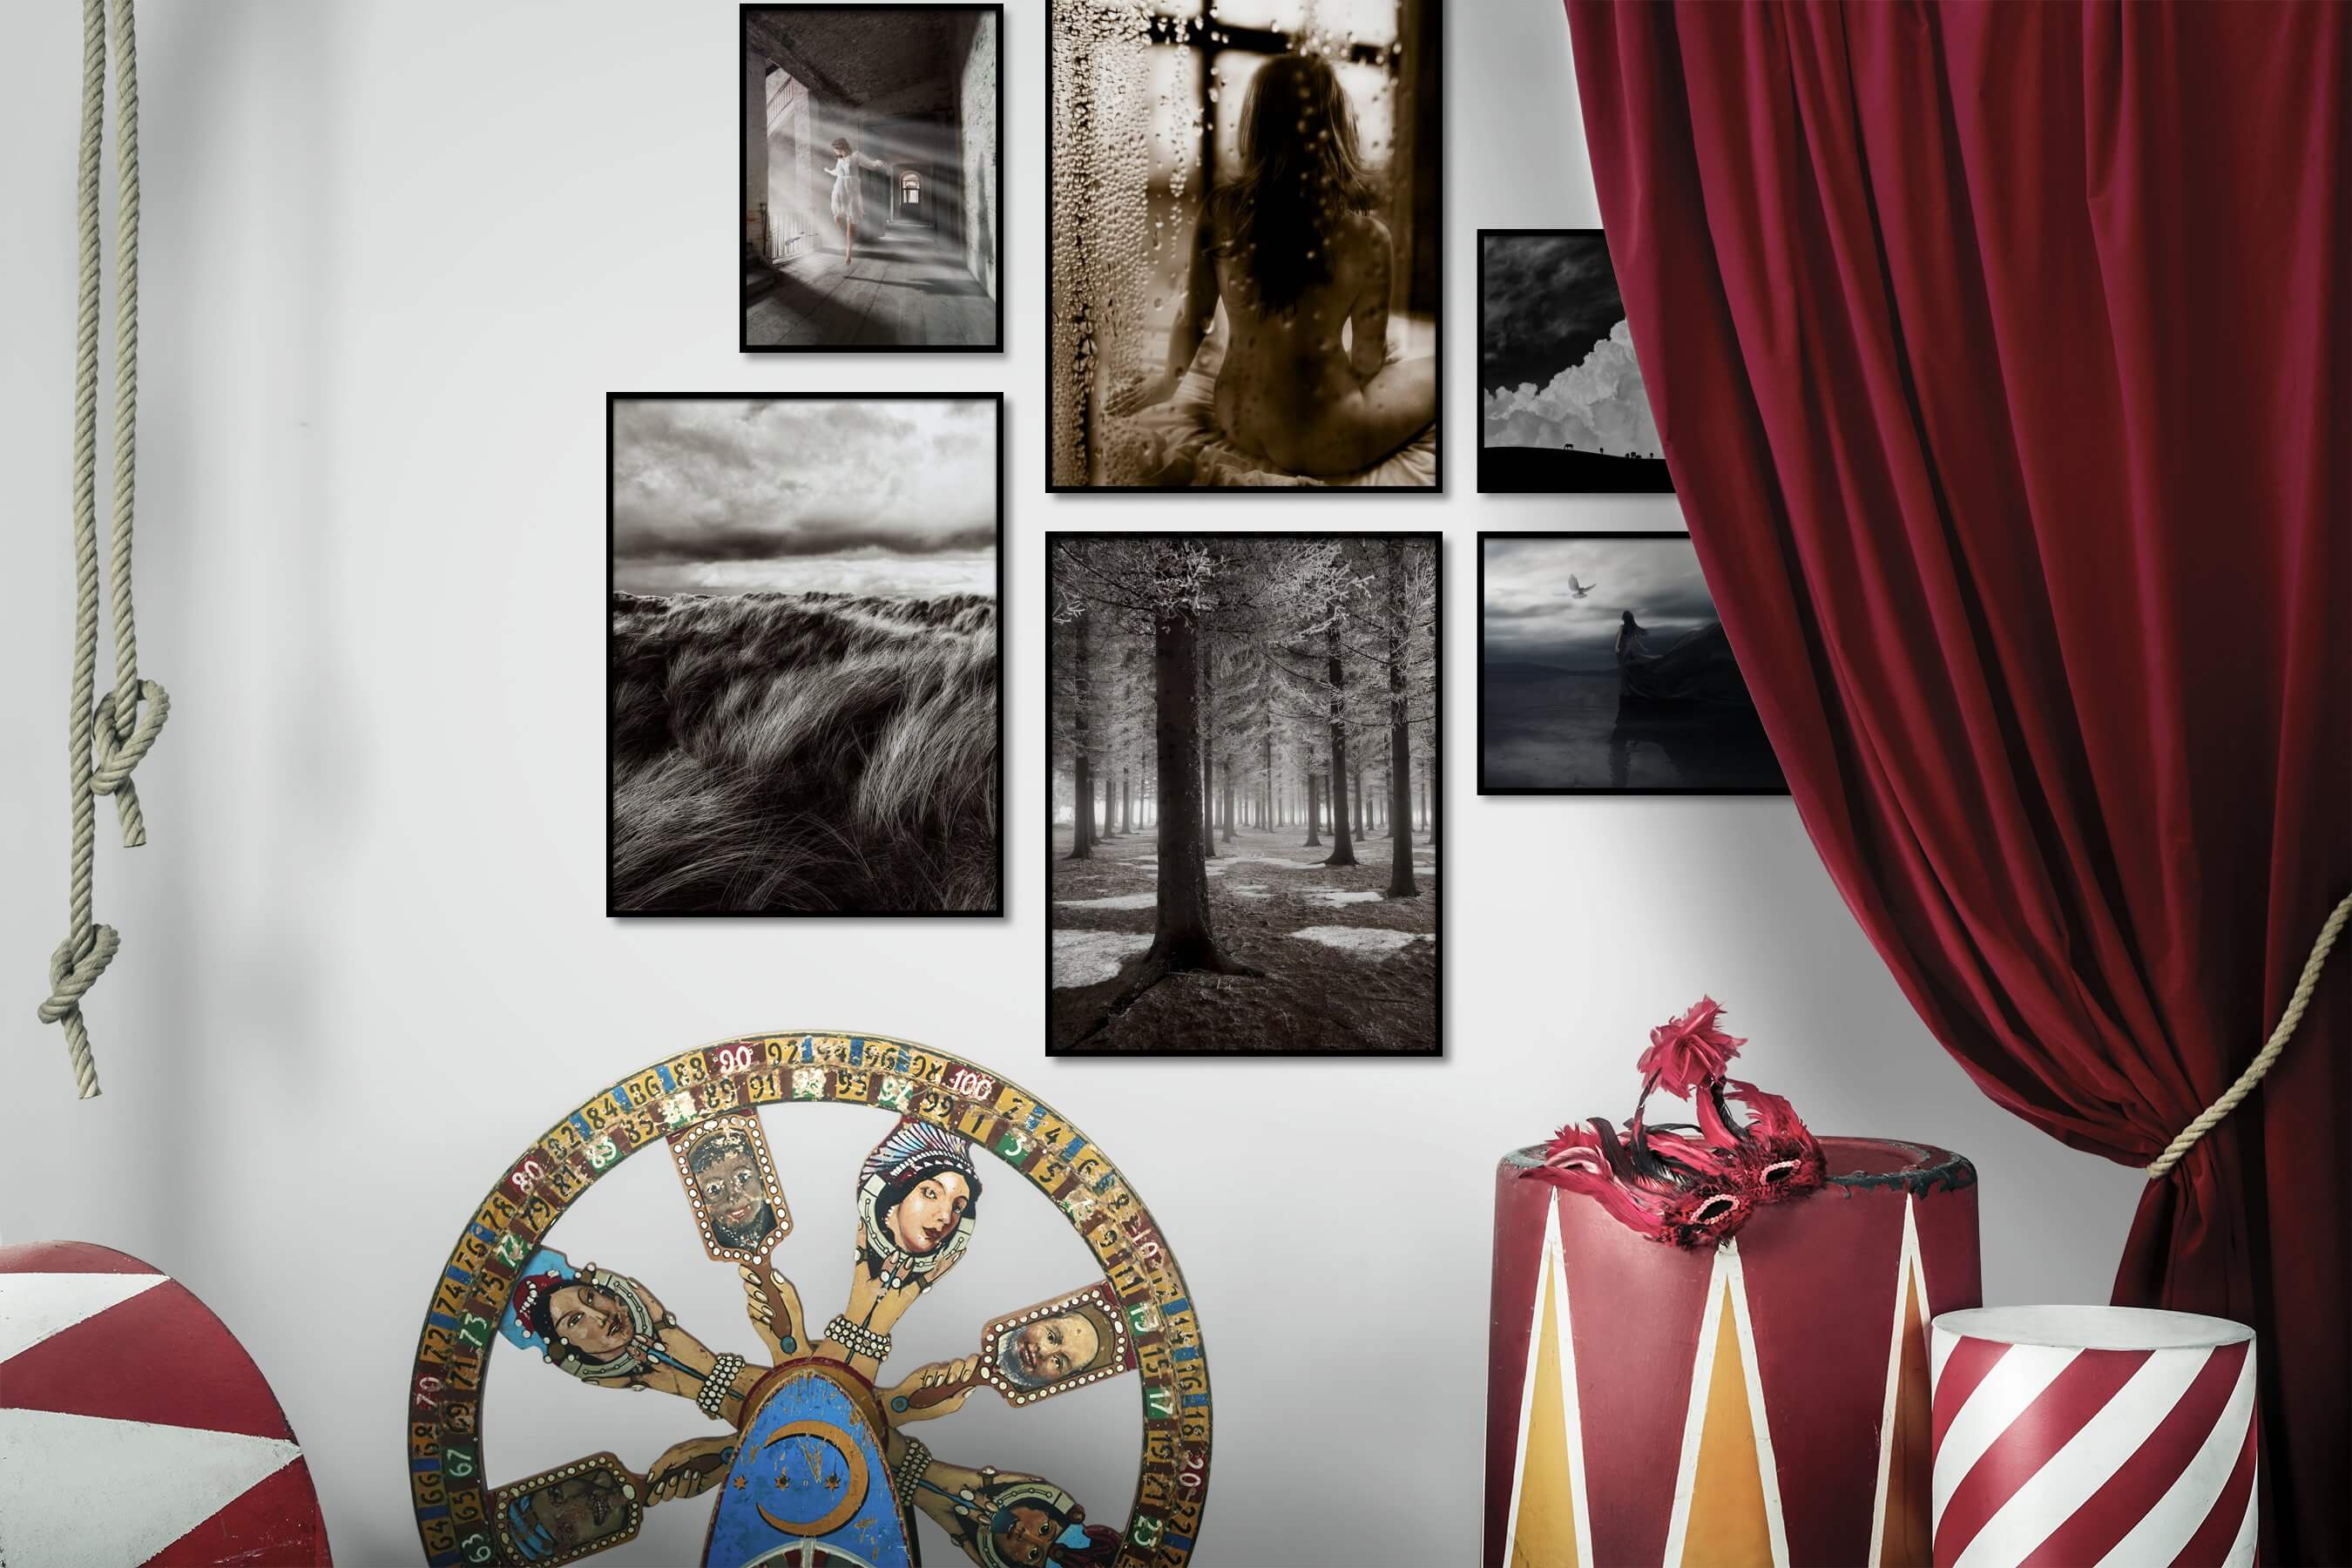 Gallery wall idea with six framed pictures arranged on a wall depicting Artsy, Fashion & Beauty, Black & White, Nature, Animals, Country Life, and Mindfulness